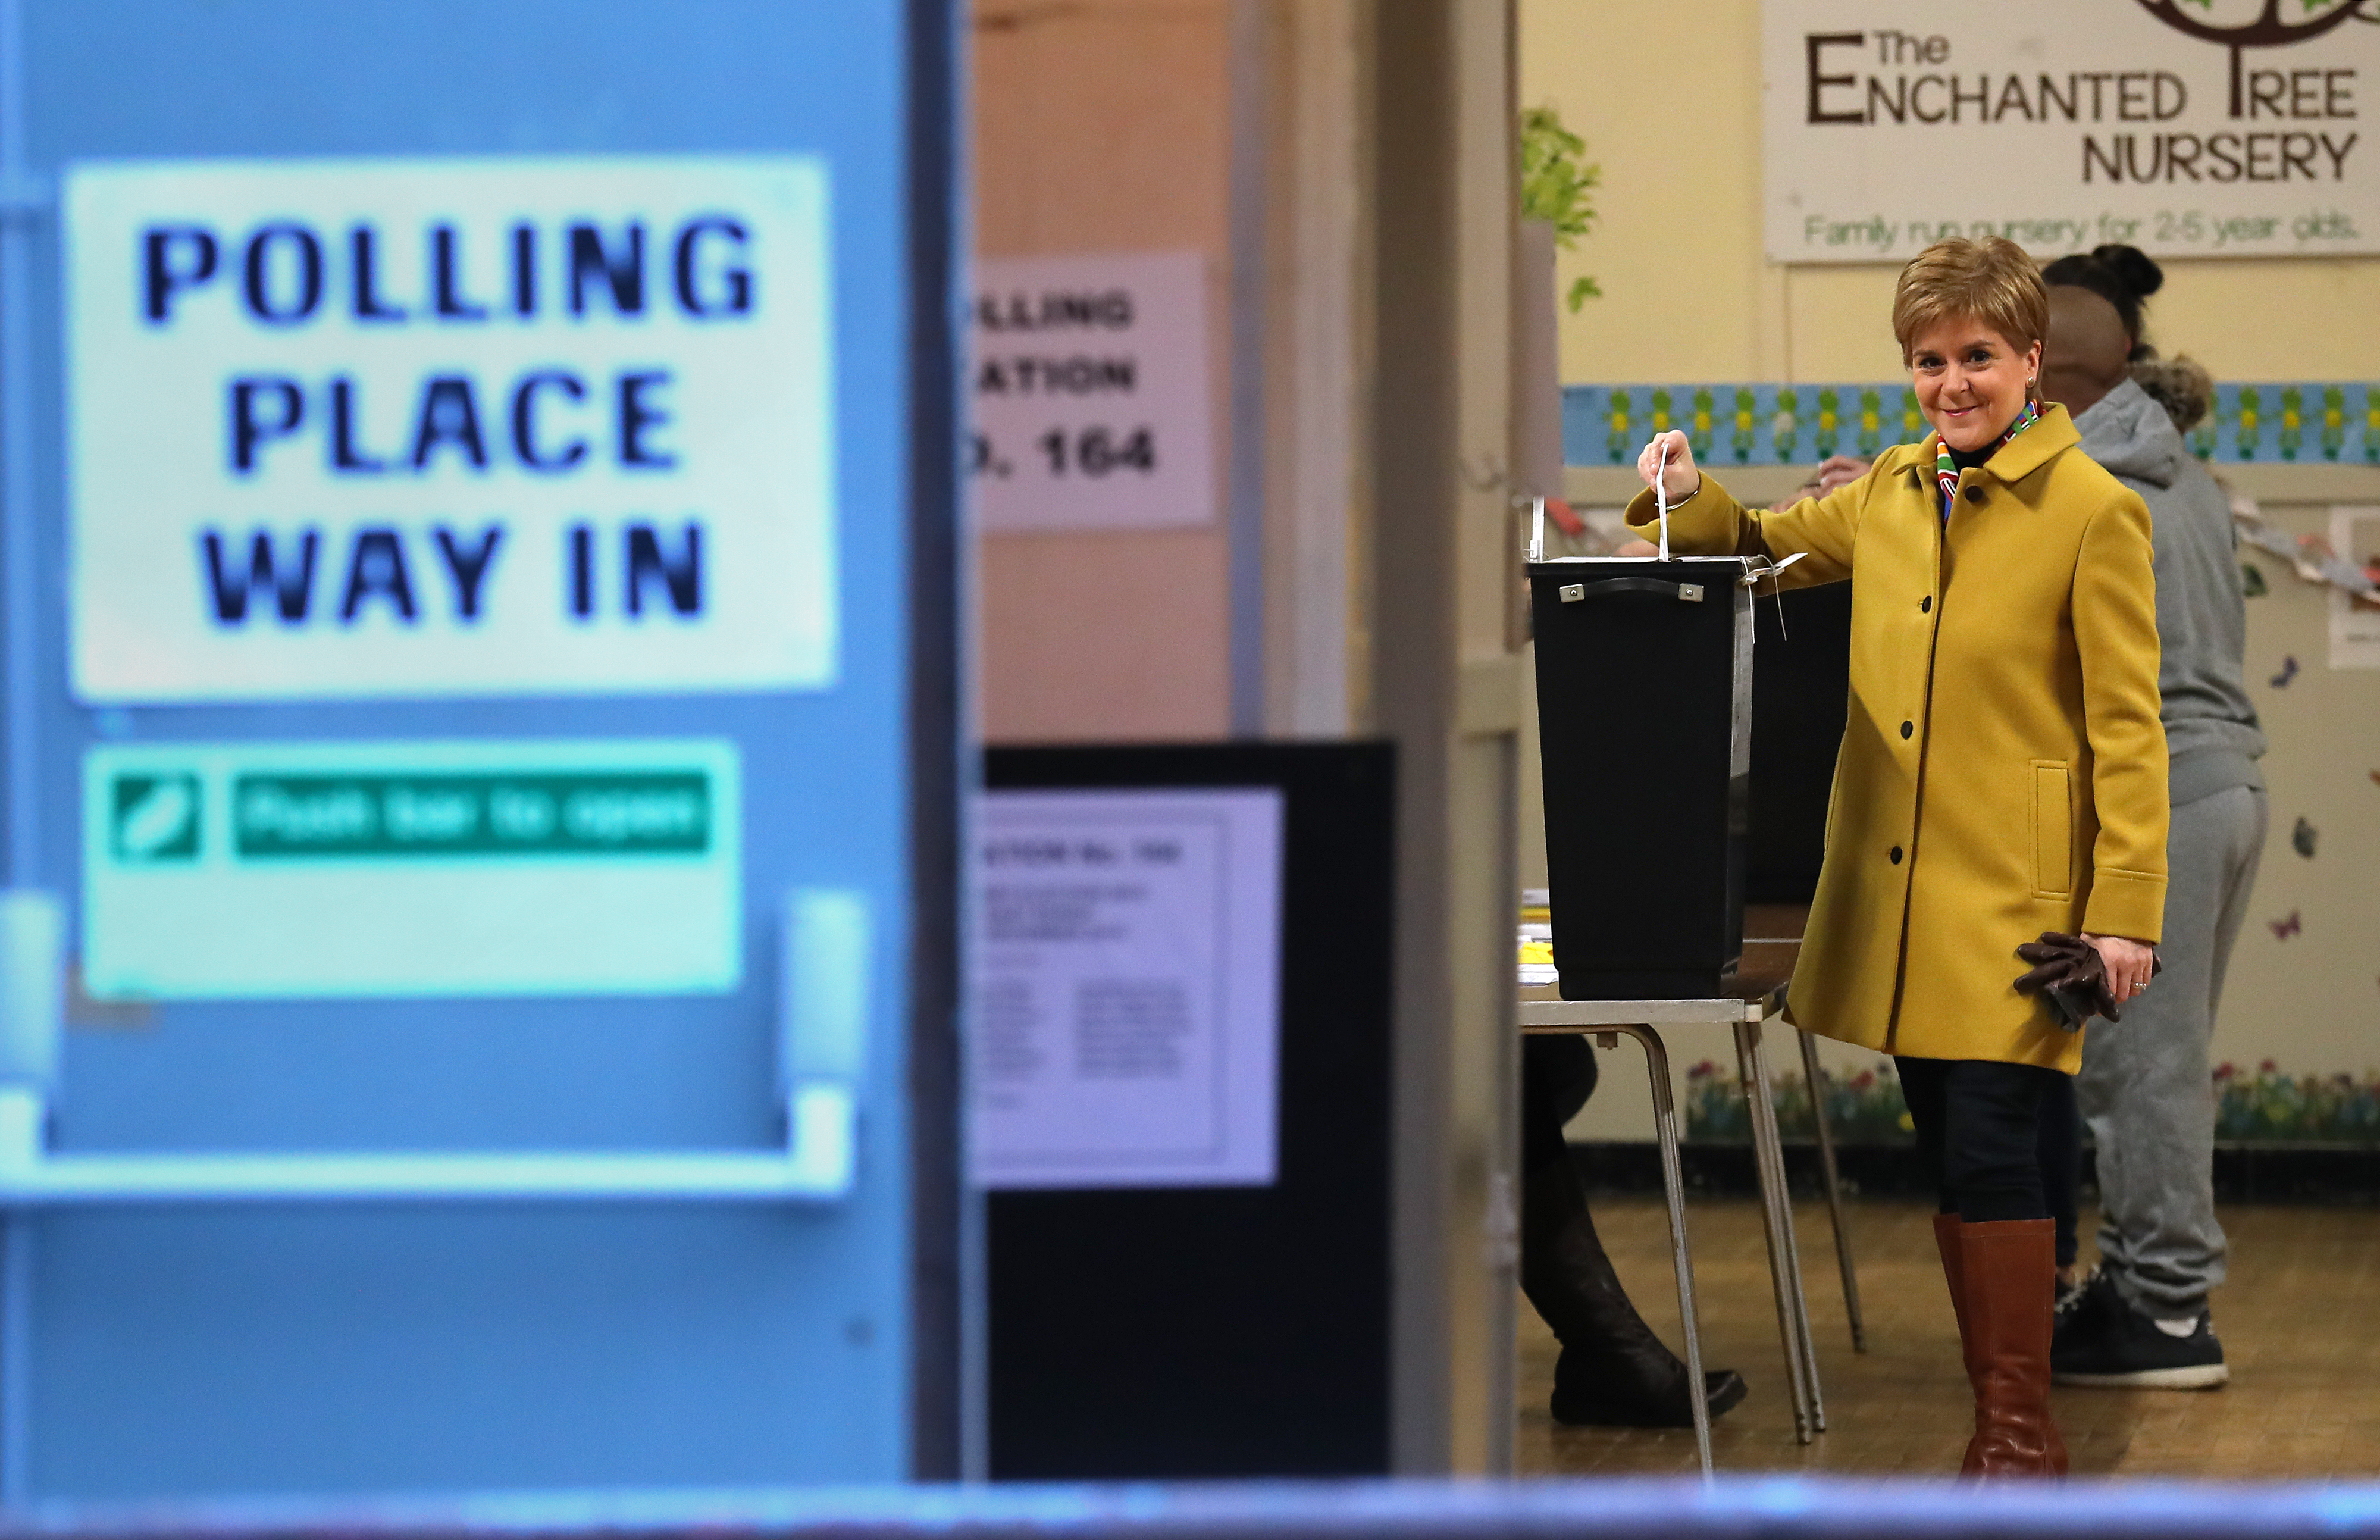 SNP leader Nicola Sturgeon casts her vote in the 2019 General Election at Broomhouse Park Community Hall in Glasgow. (Photo by Andrew Milligan/PA Images via Getty Images)